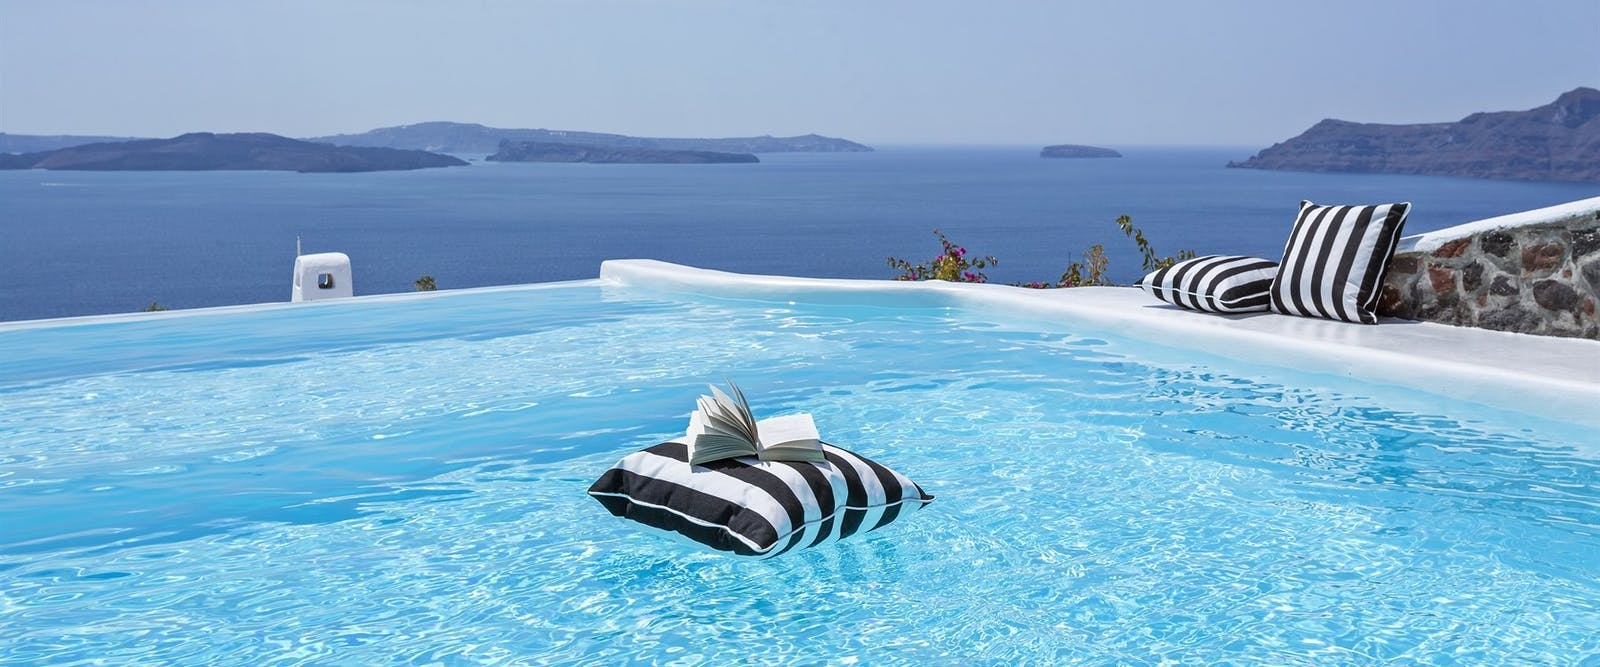 Infinity Pool at Canaves Oia Hotel, Santorini, Greece